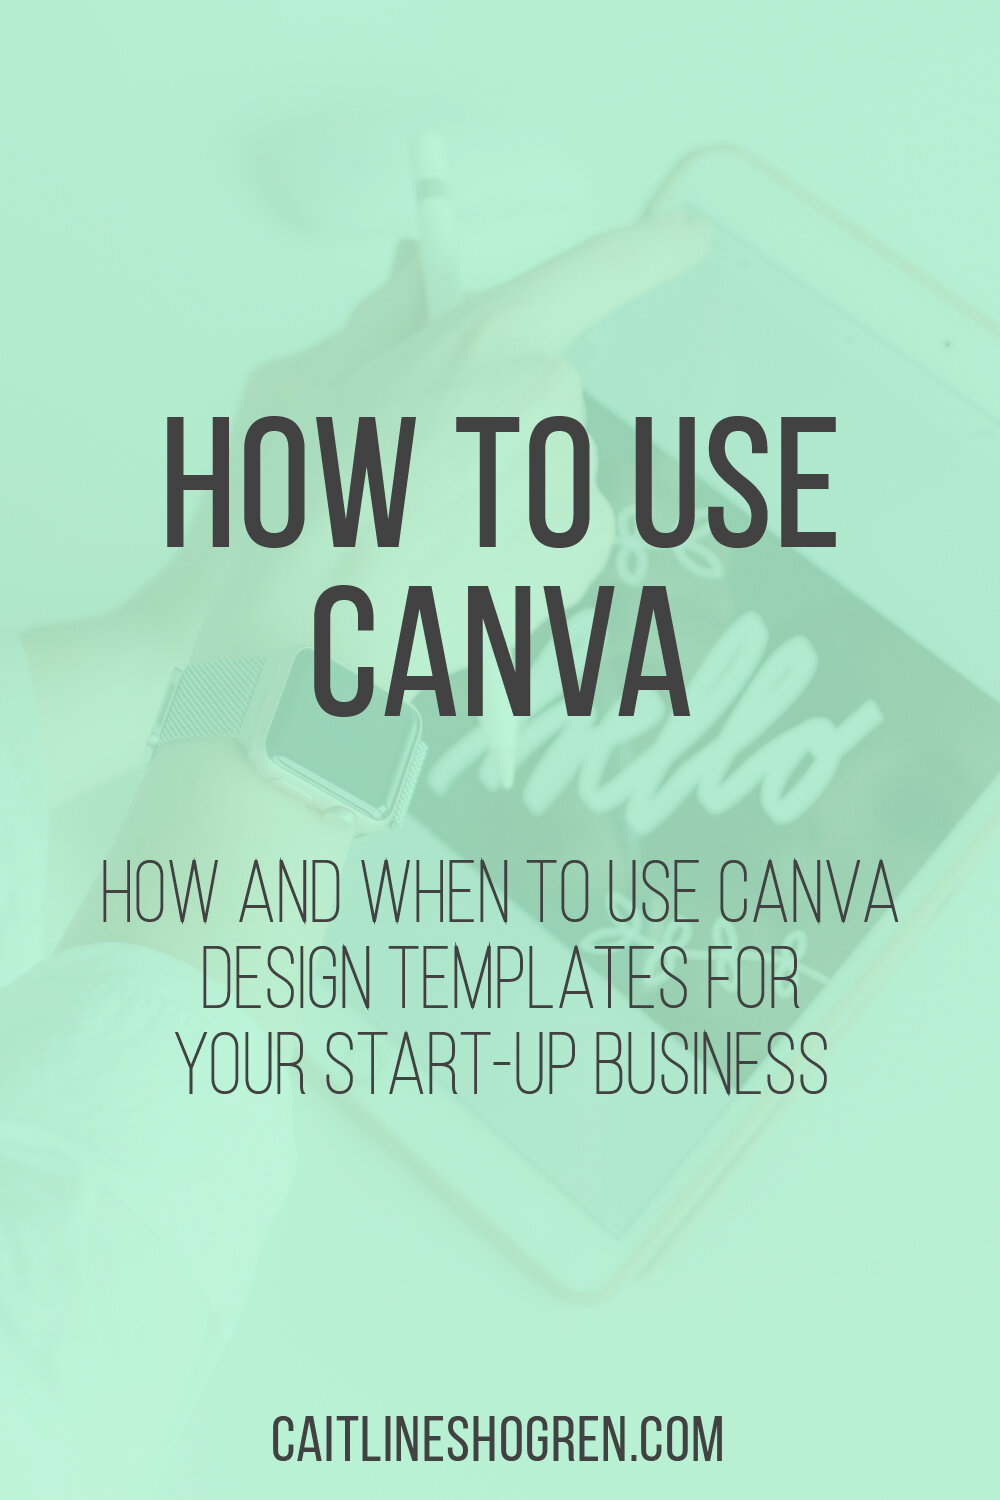 how-to-use-canva.jpg